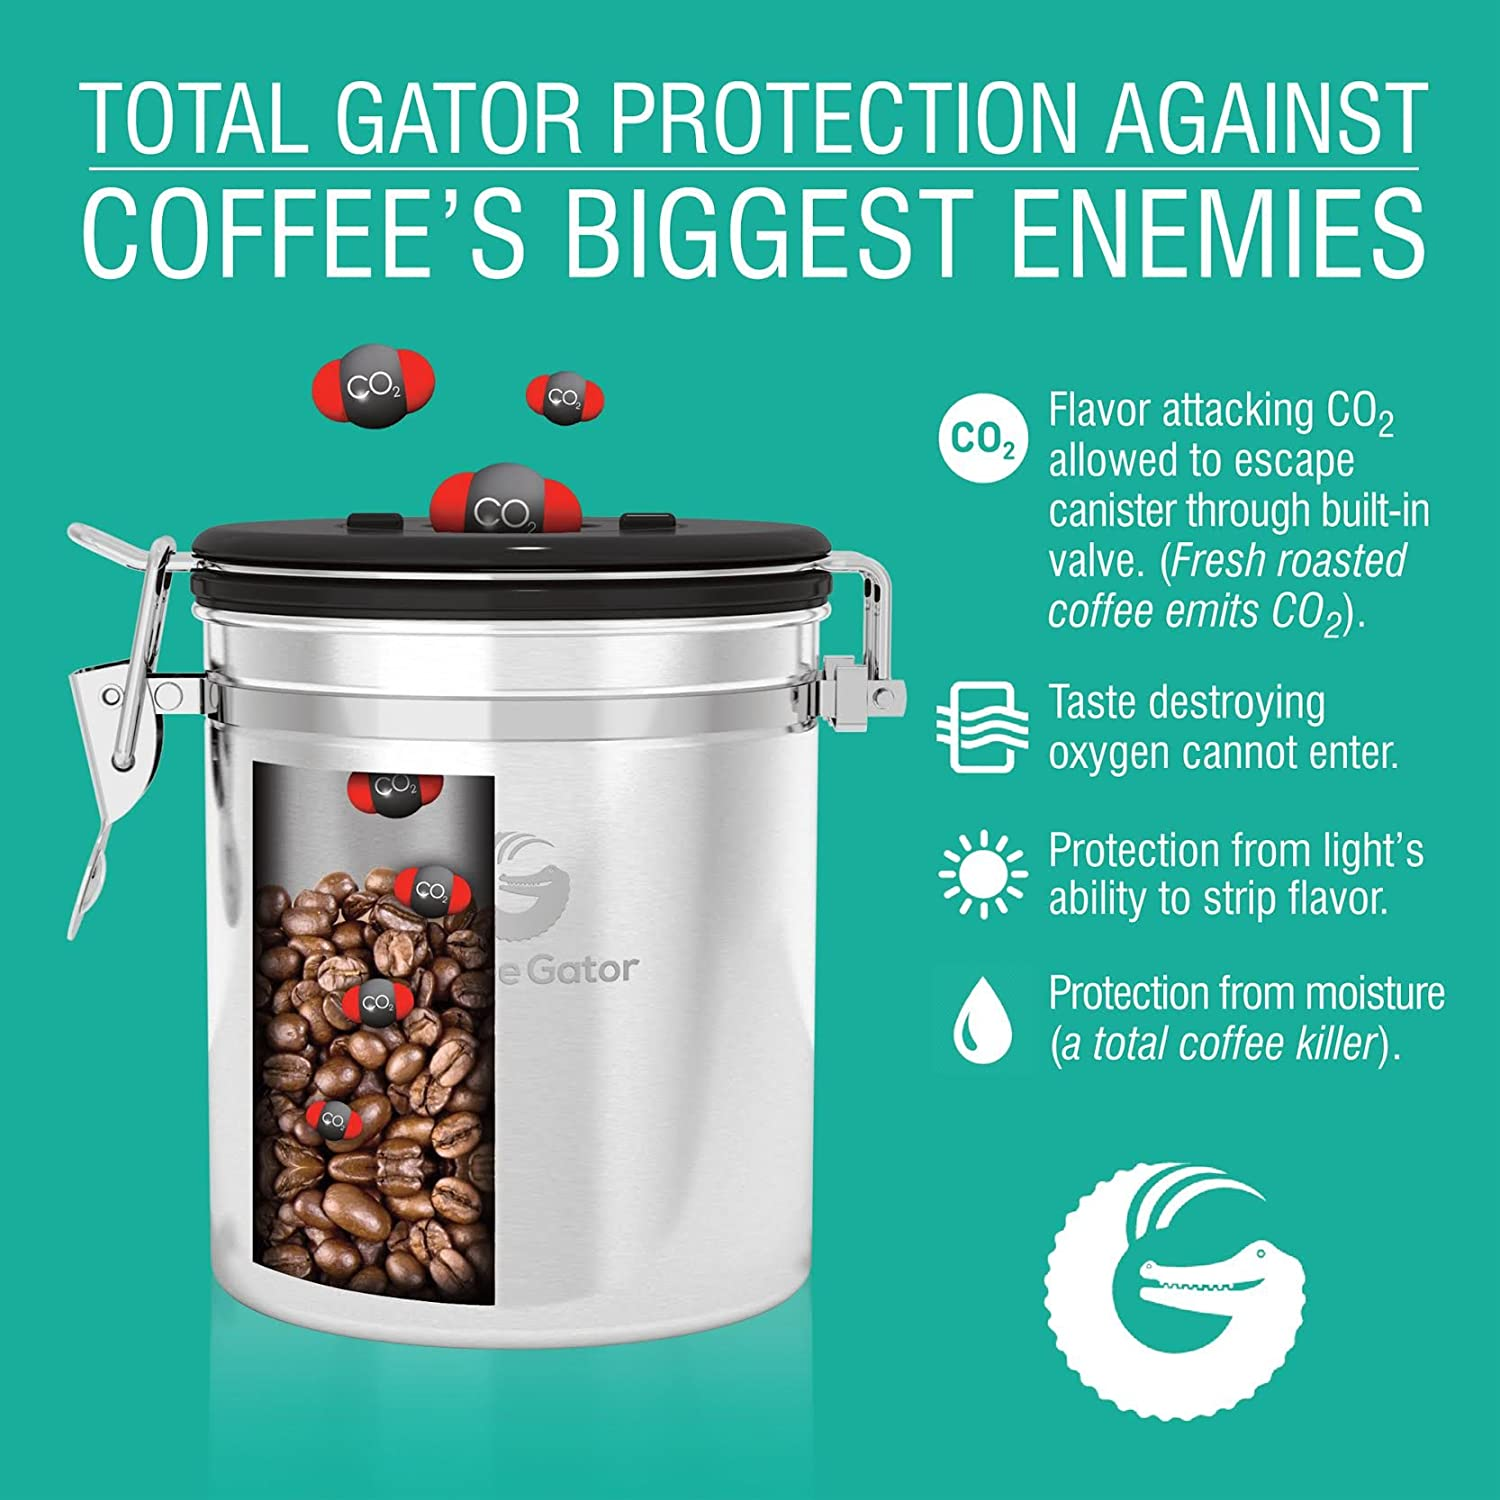 Amazon.com: Coffee Gator Stainless Steel Container - Canister with ...